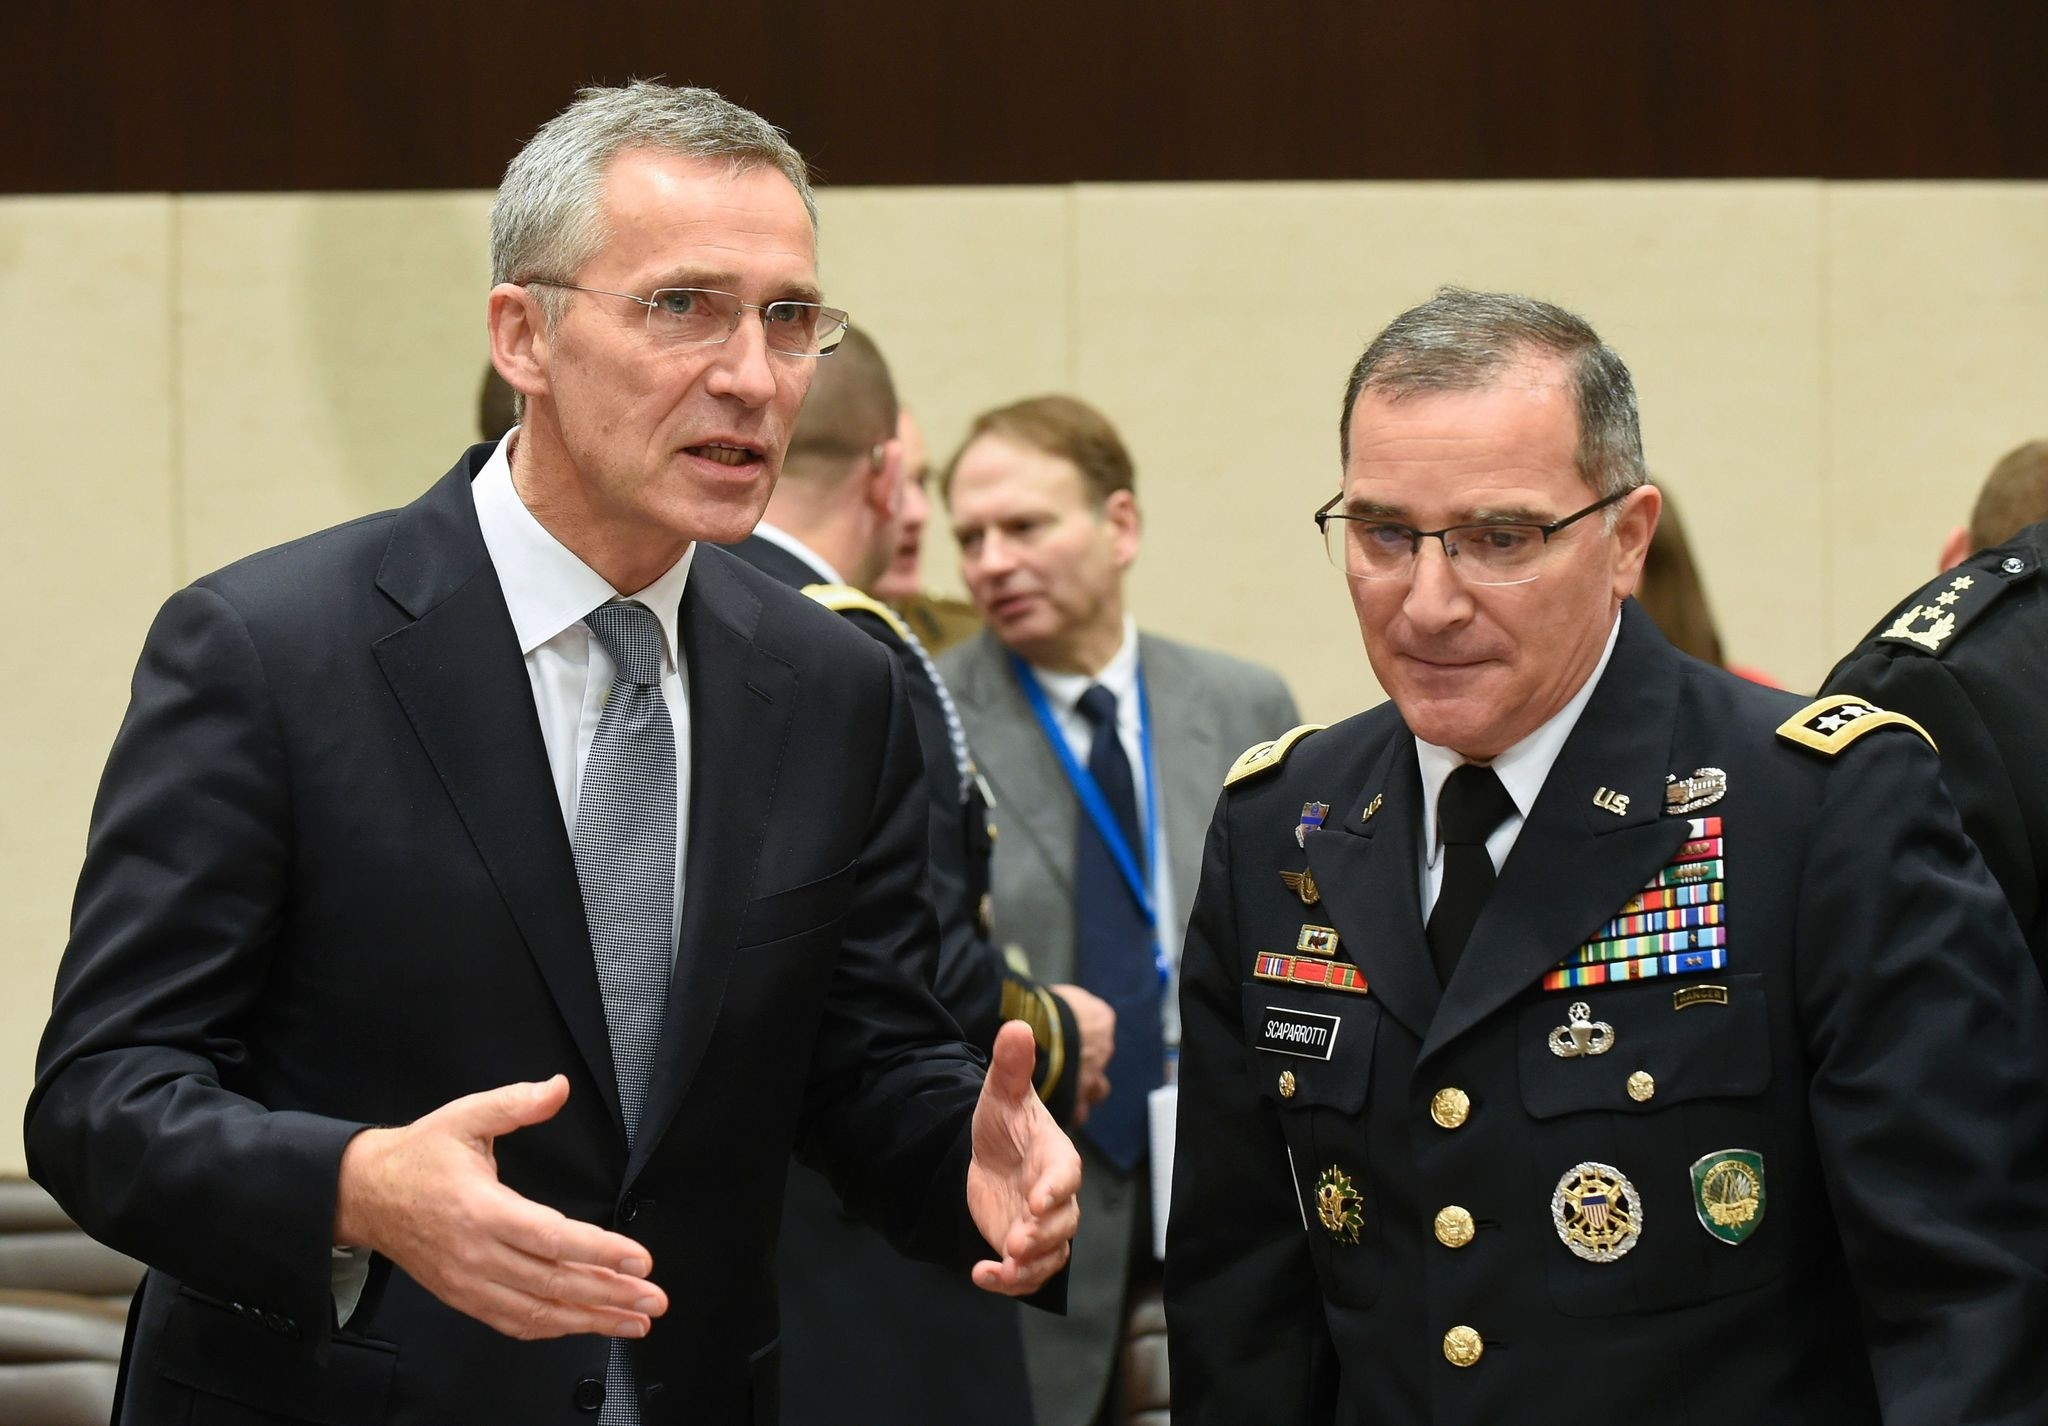 NATO Secretary-General Jens Stoltenberg (L) talks with Supreme Allied Commander Europe of NATO Allied Command Operations Curtis M. Scaparrotti (R) (AFP Photo)